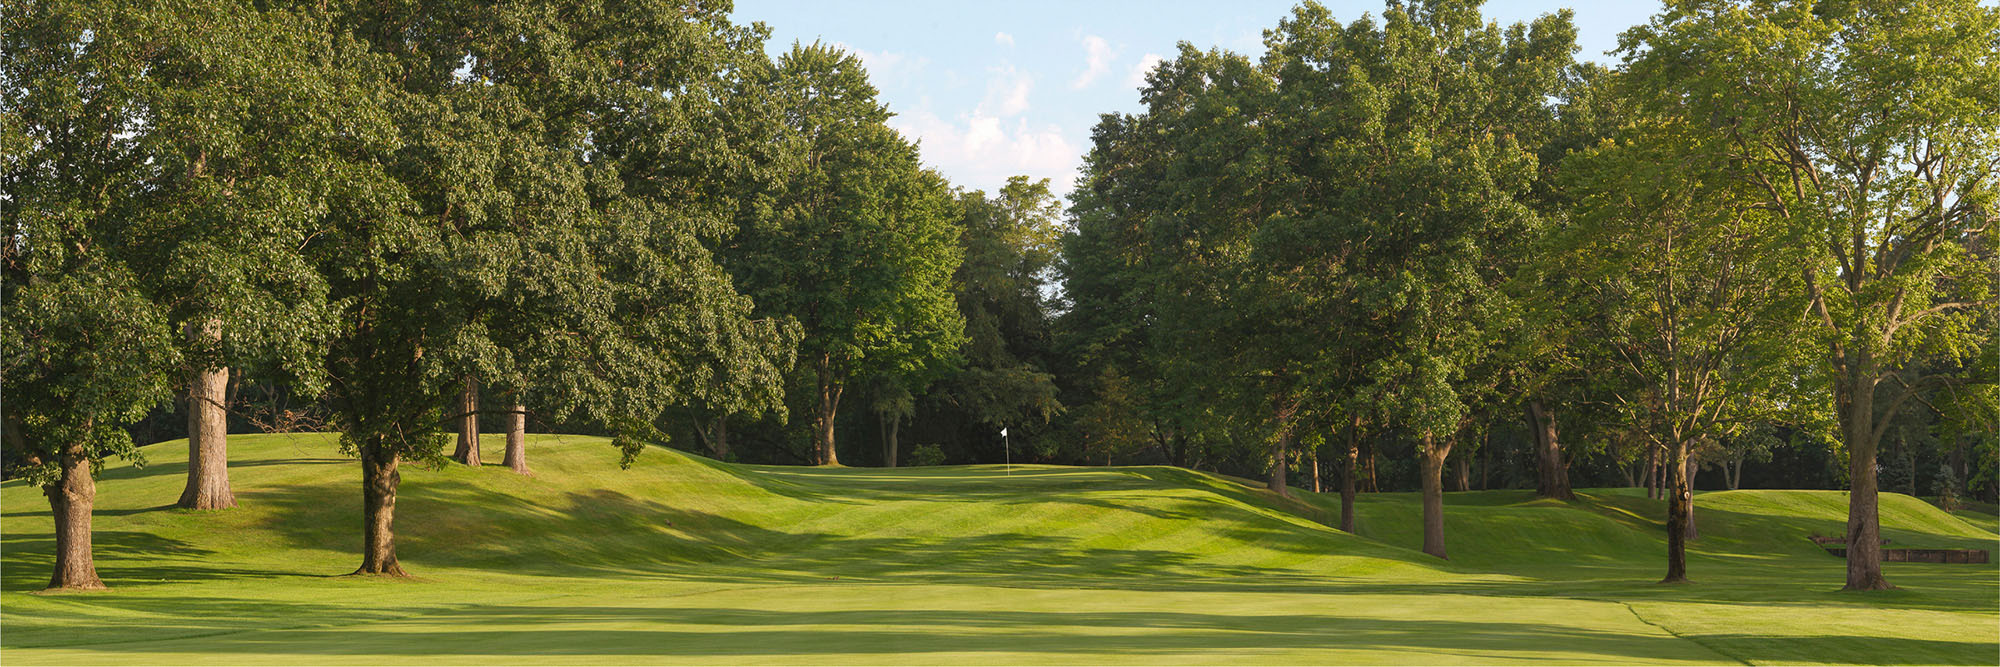 Golf Course Image - South Bend No. 1